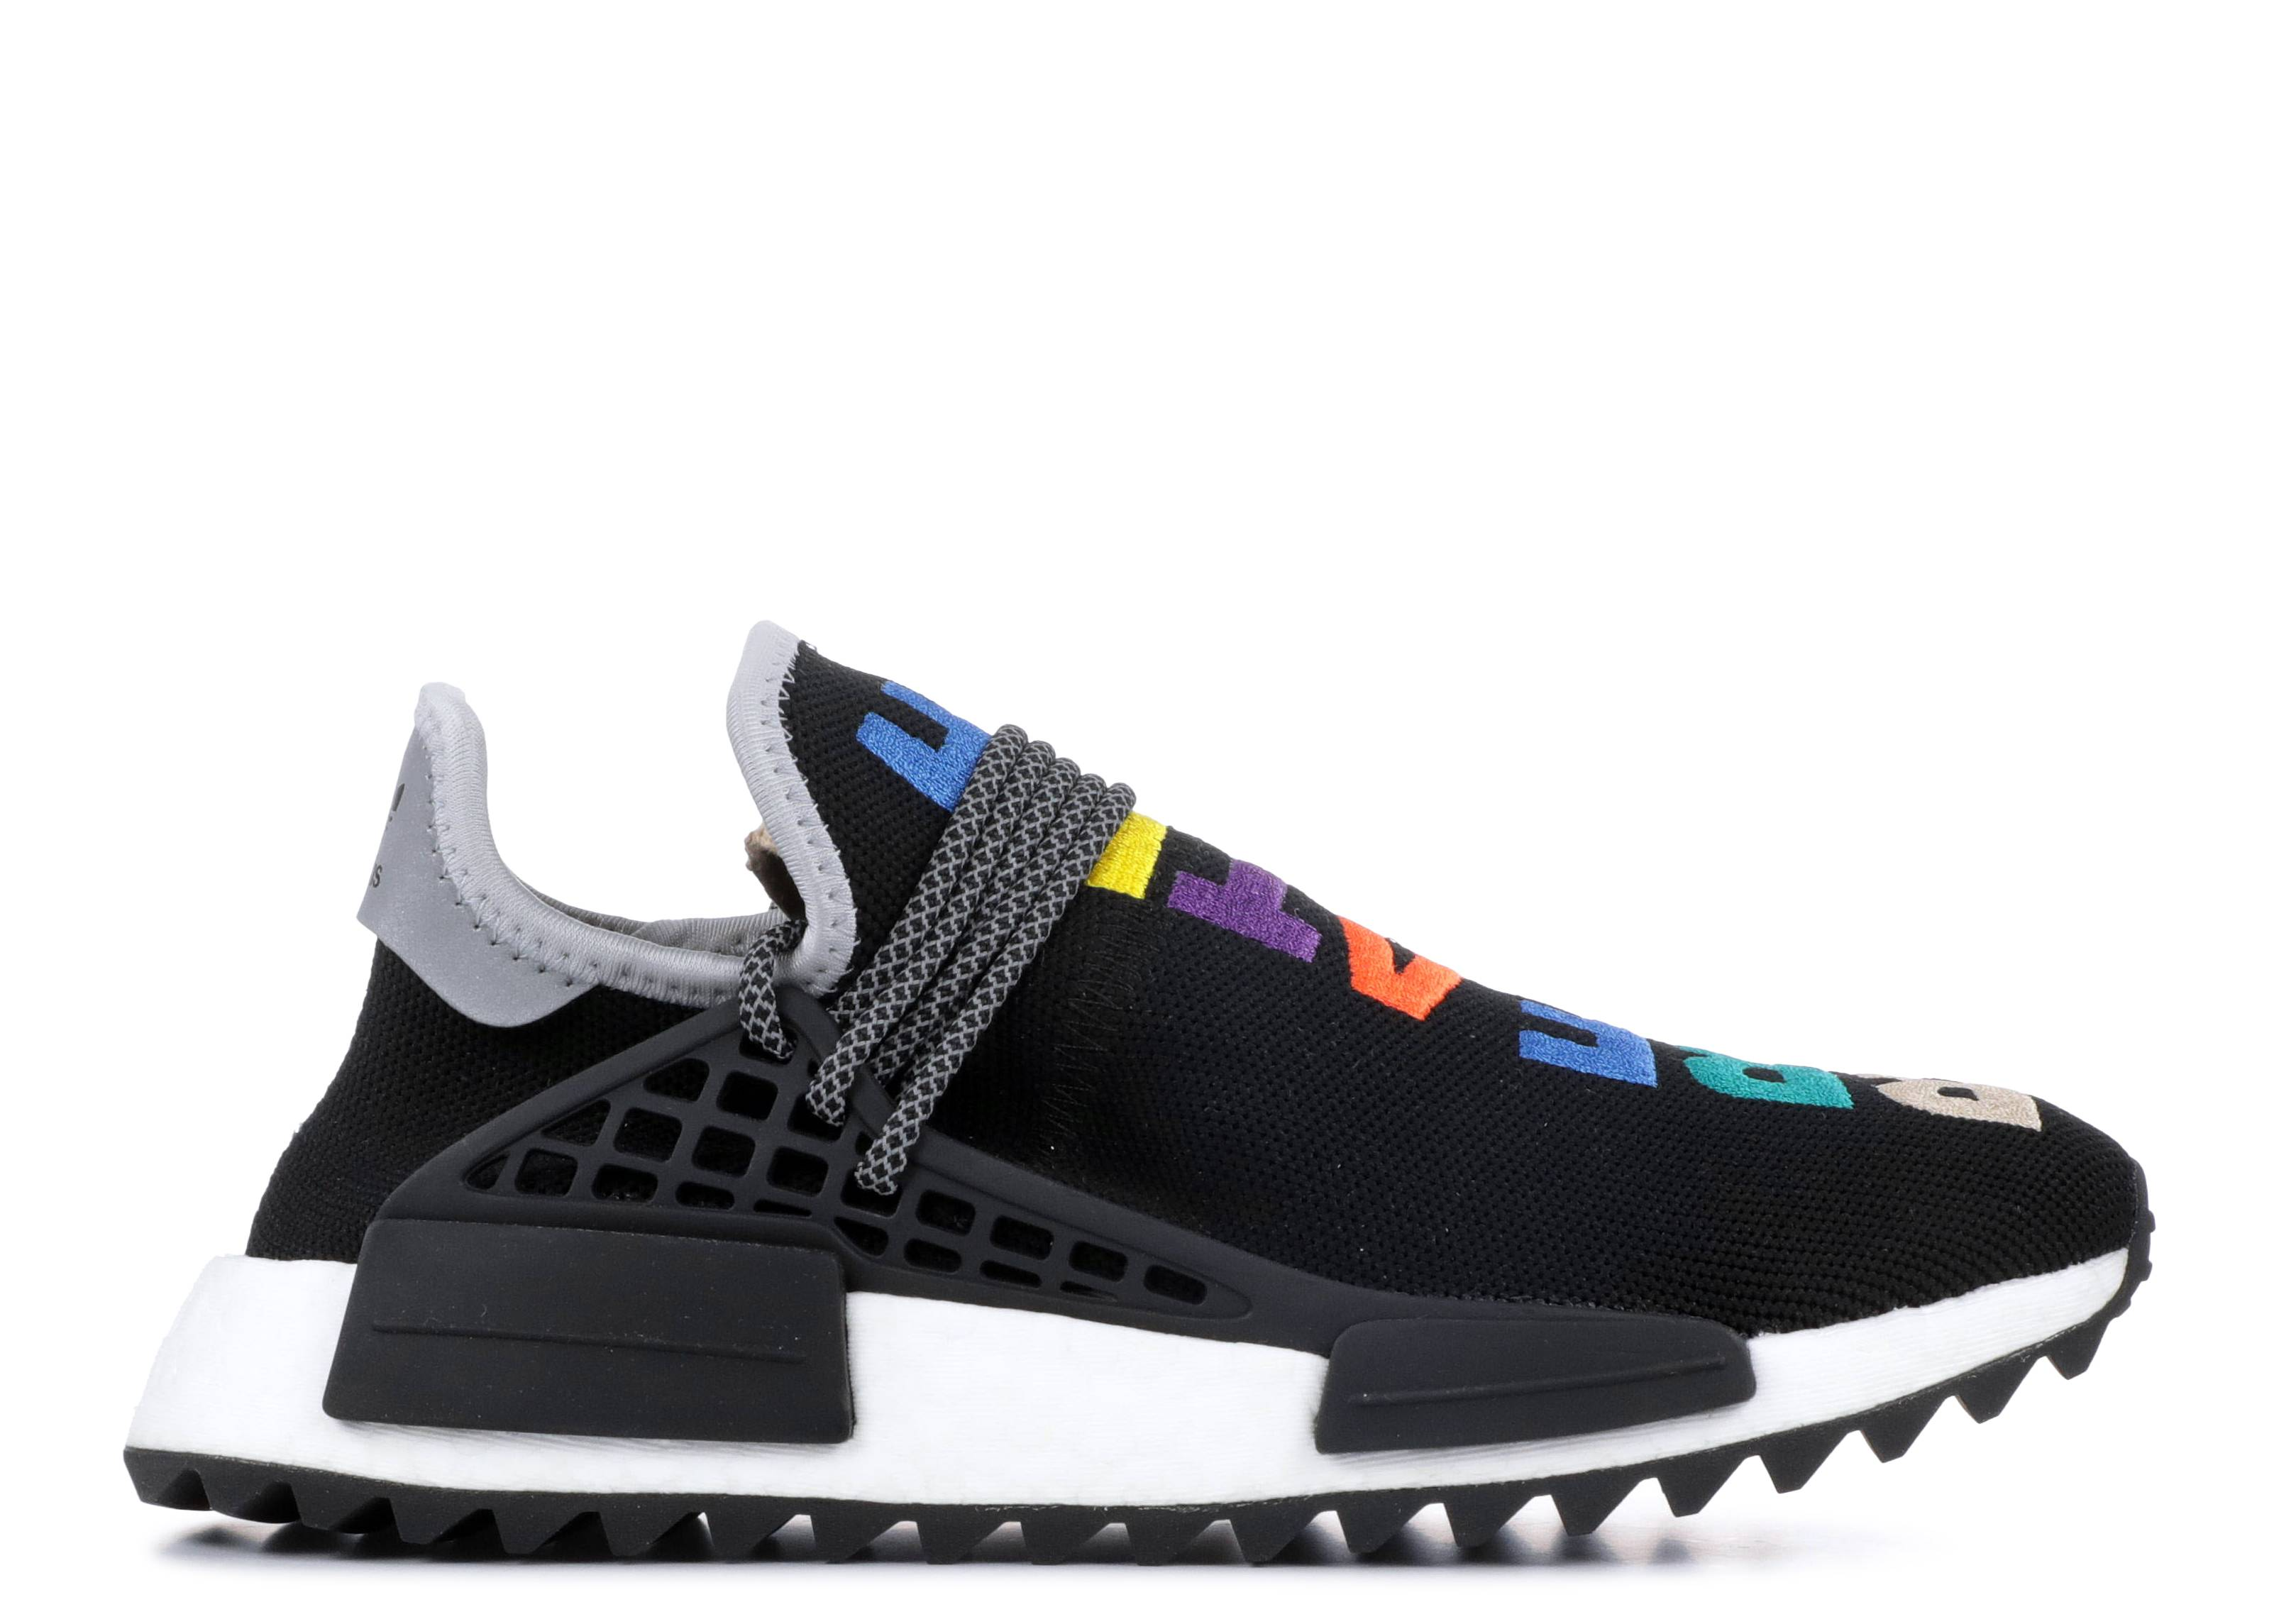 huge selection of 4c86c 865c8 pw human race nmd tr